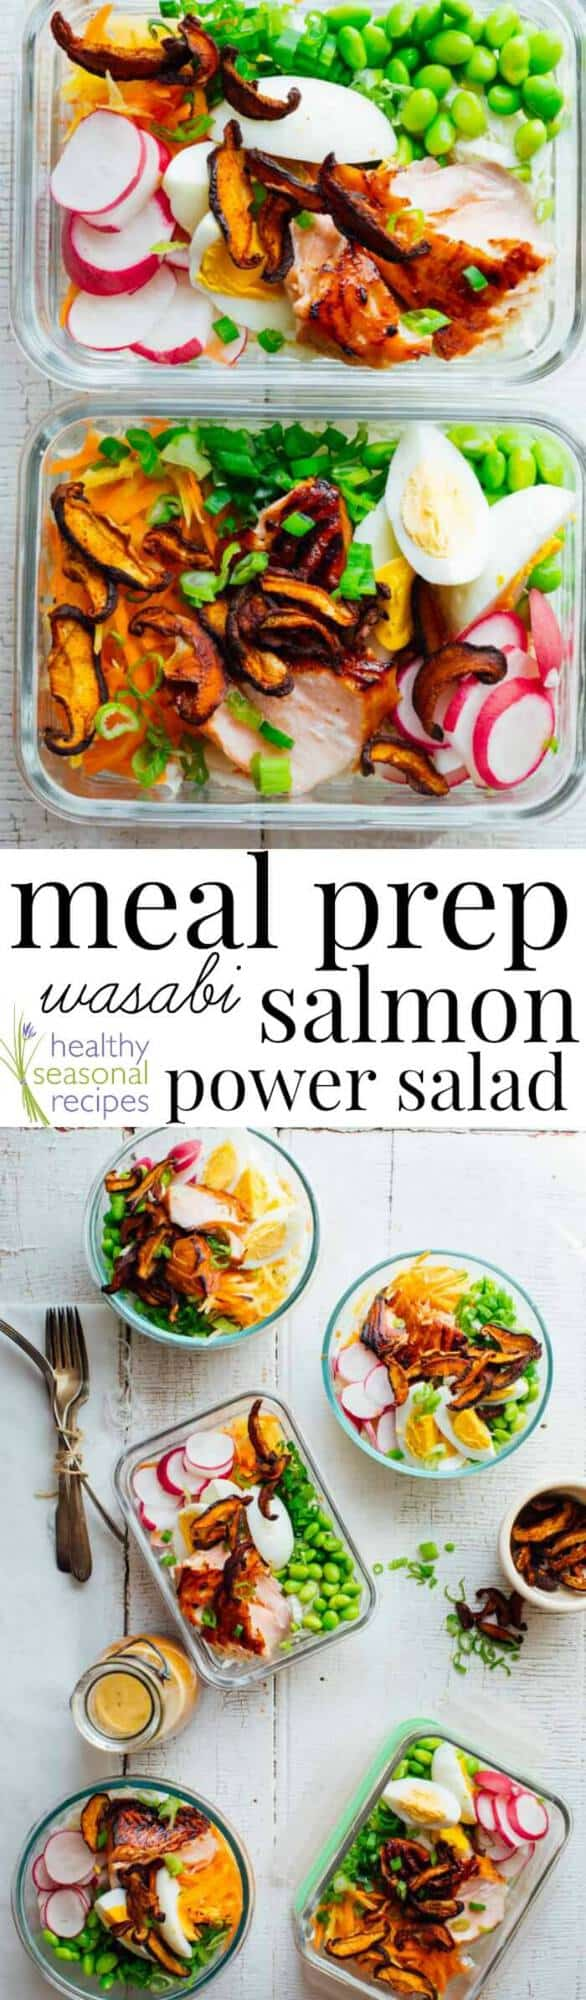 collage of meal prep salads with text